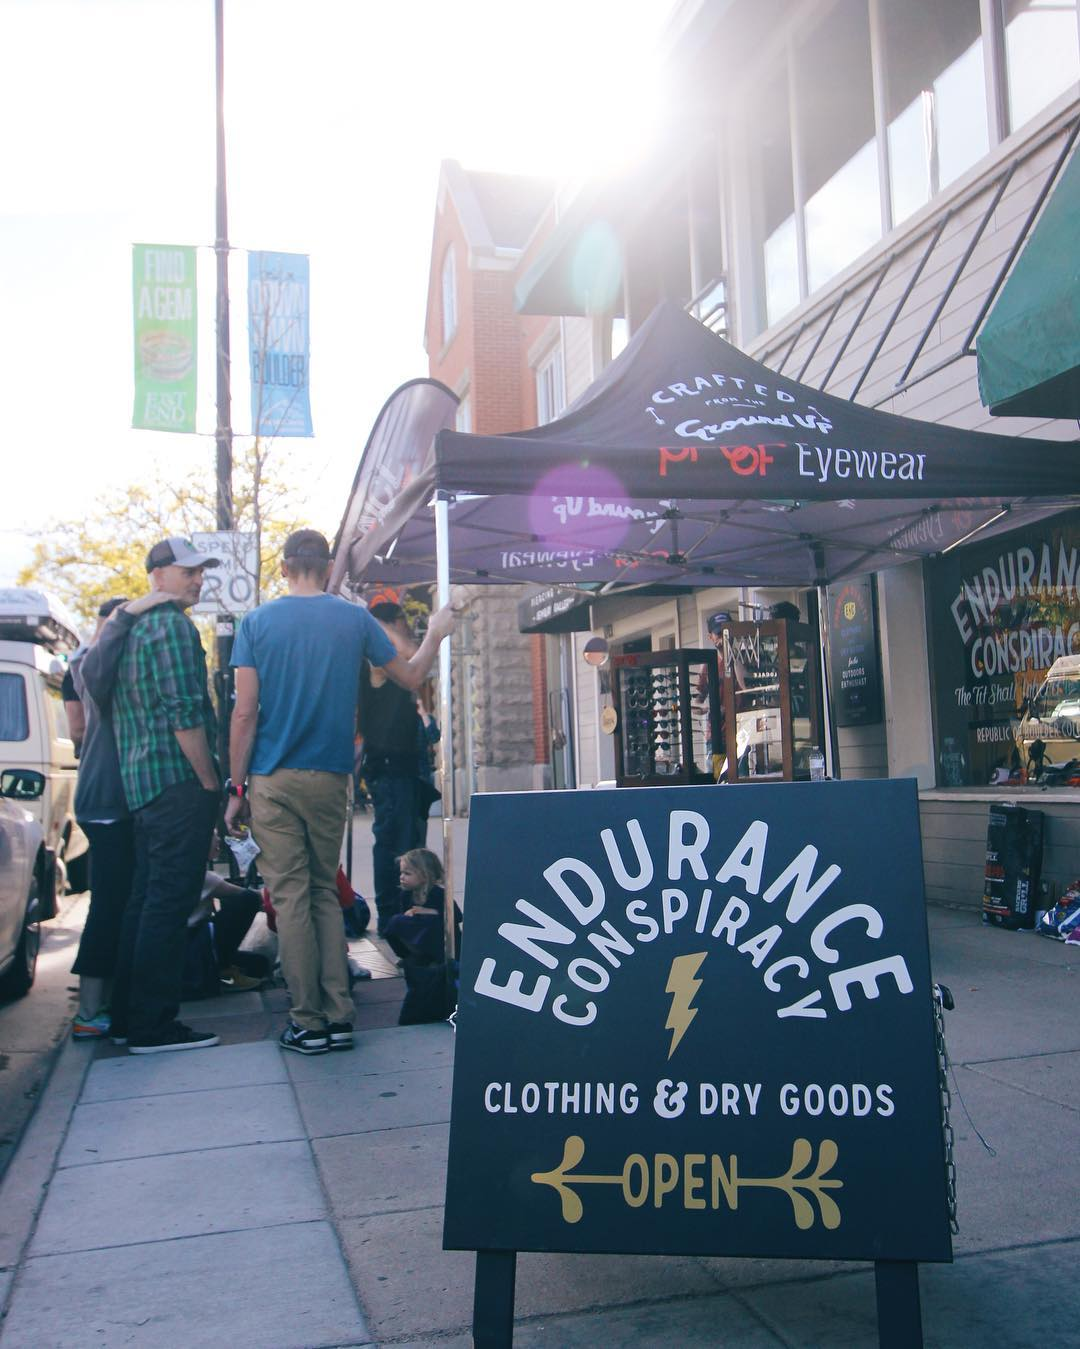 The @airstreamtour is at @enduranceconspiracy in Boulder, CO until 8pm tonight - if you're in the area, swing by & grab a hot dog #enduranceconspiracy